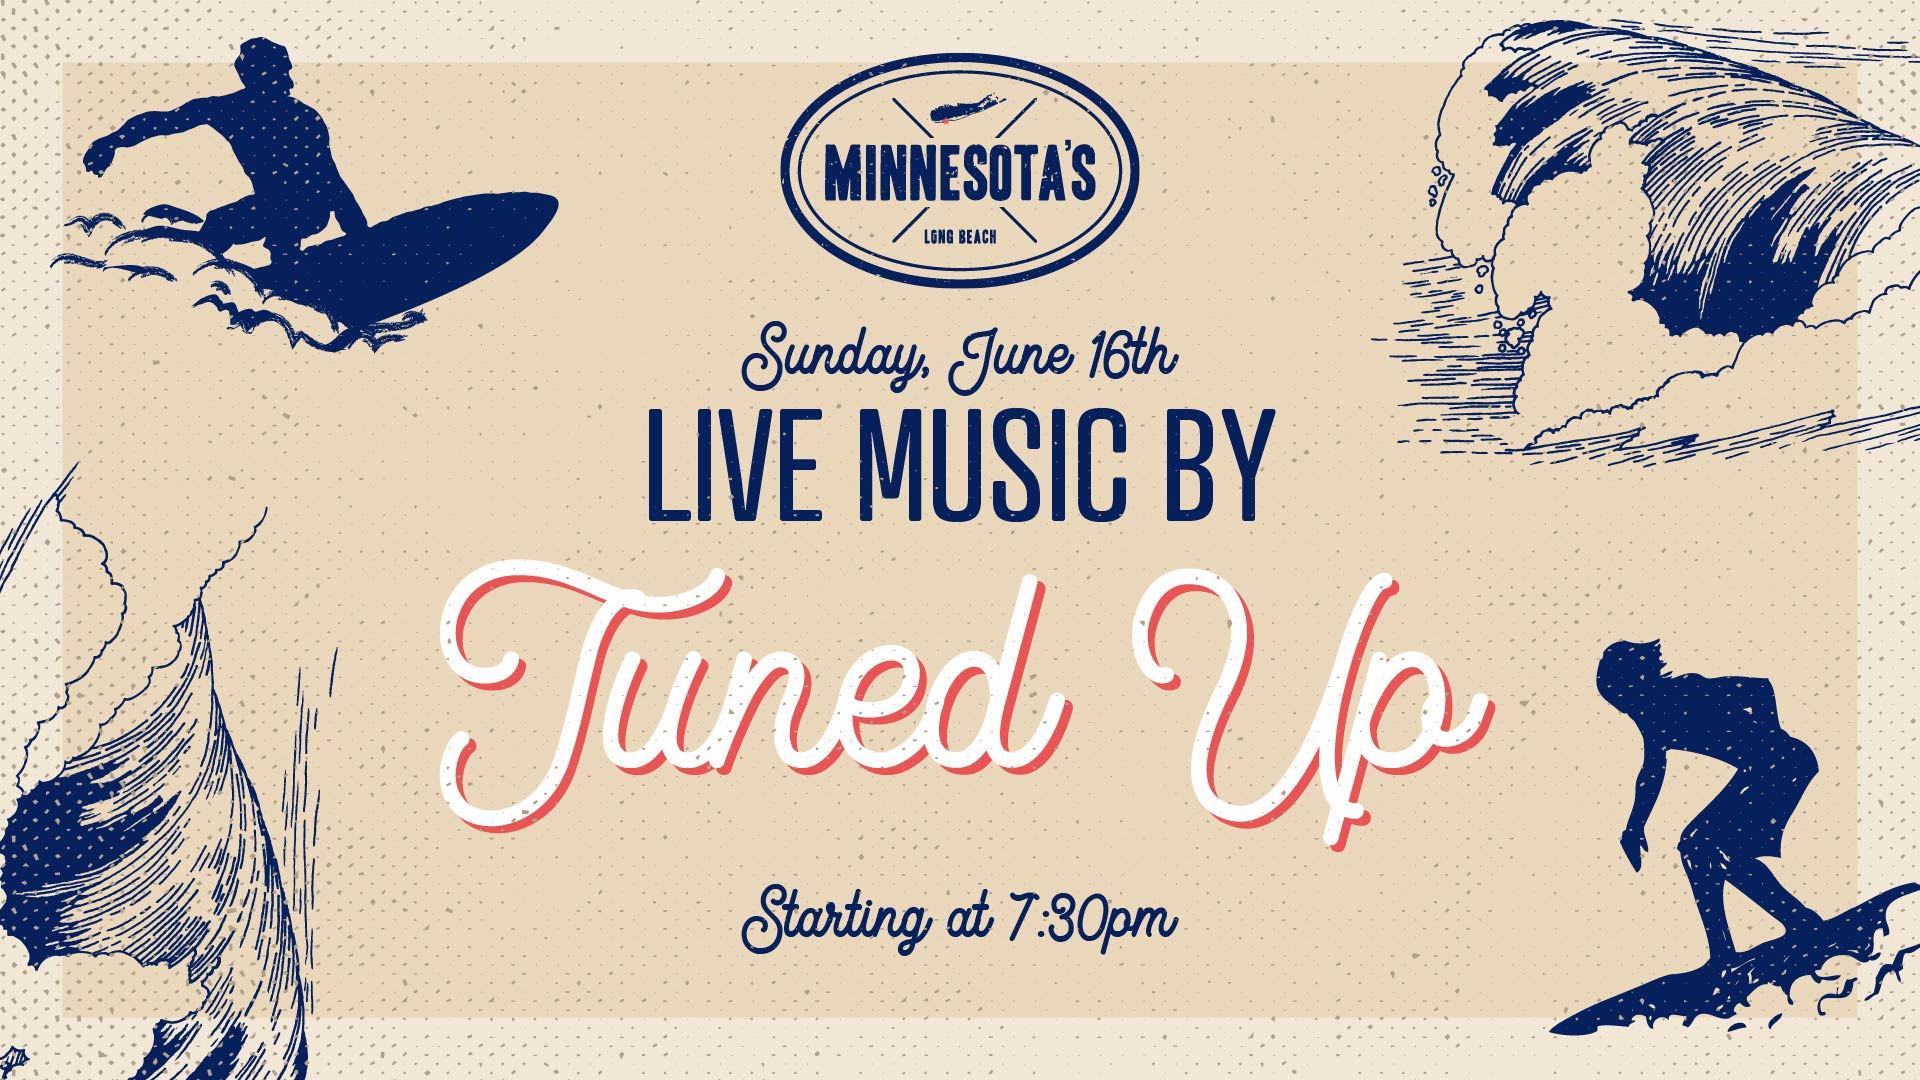 flyer for live music by tuned up at minnesotas on june 16th at 7:30pm